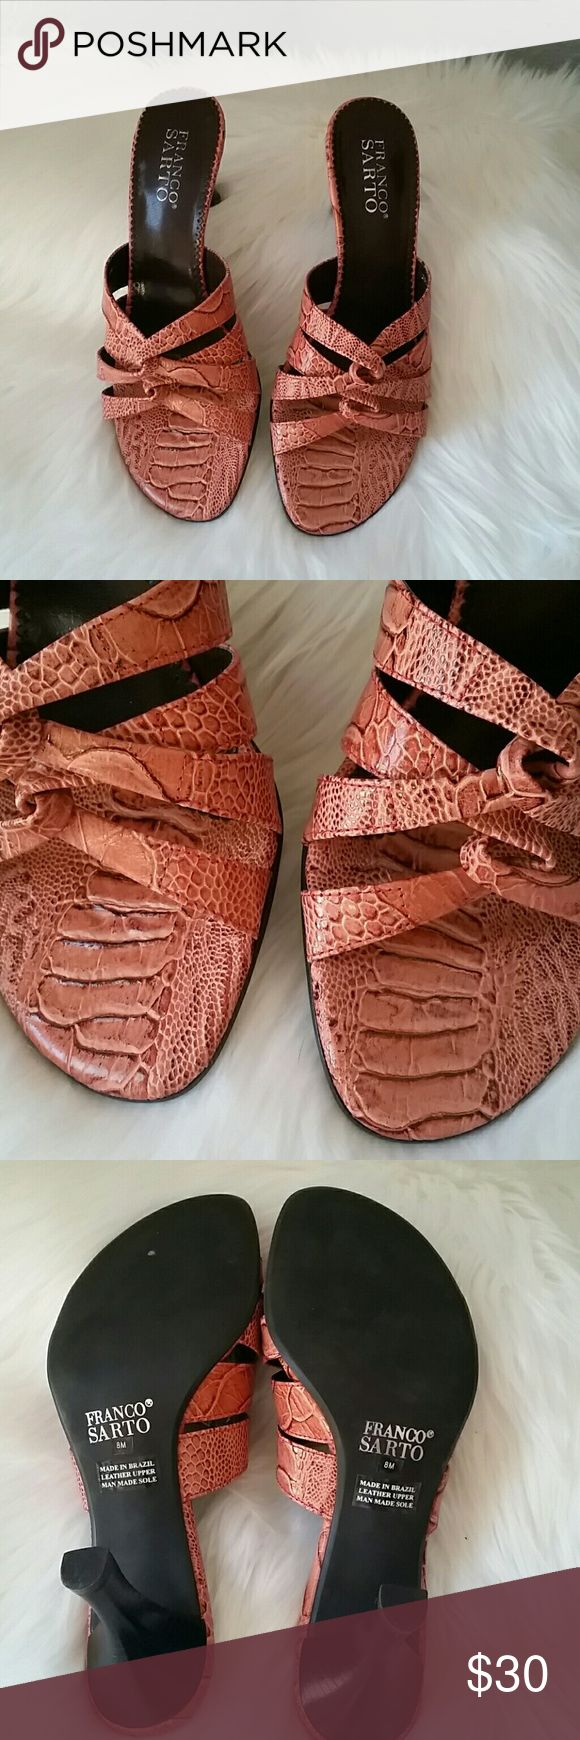 """Franco Sarto coral leather mules NWOB Franco Sarto size 8M coral leather mules. Approximately 2.75"""" heel. Cushioned heel and arch. Franco Sarto Shoes Sandals"""